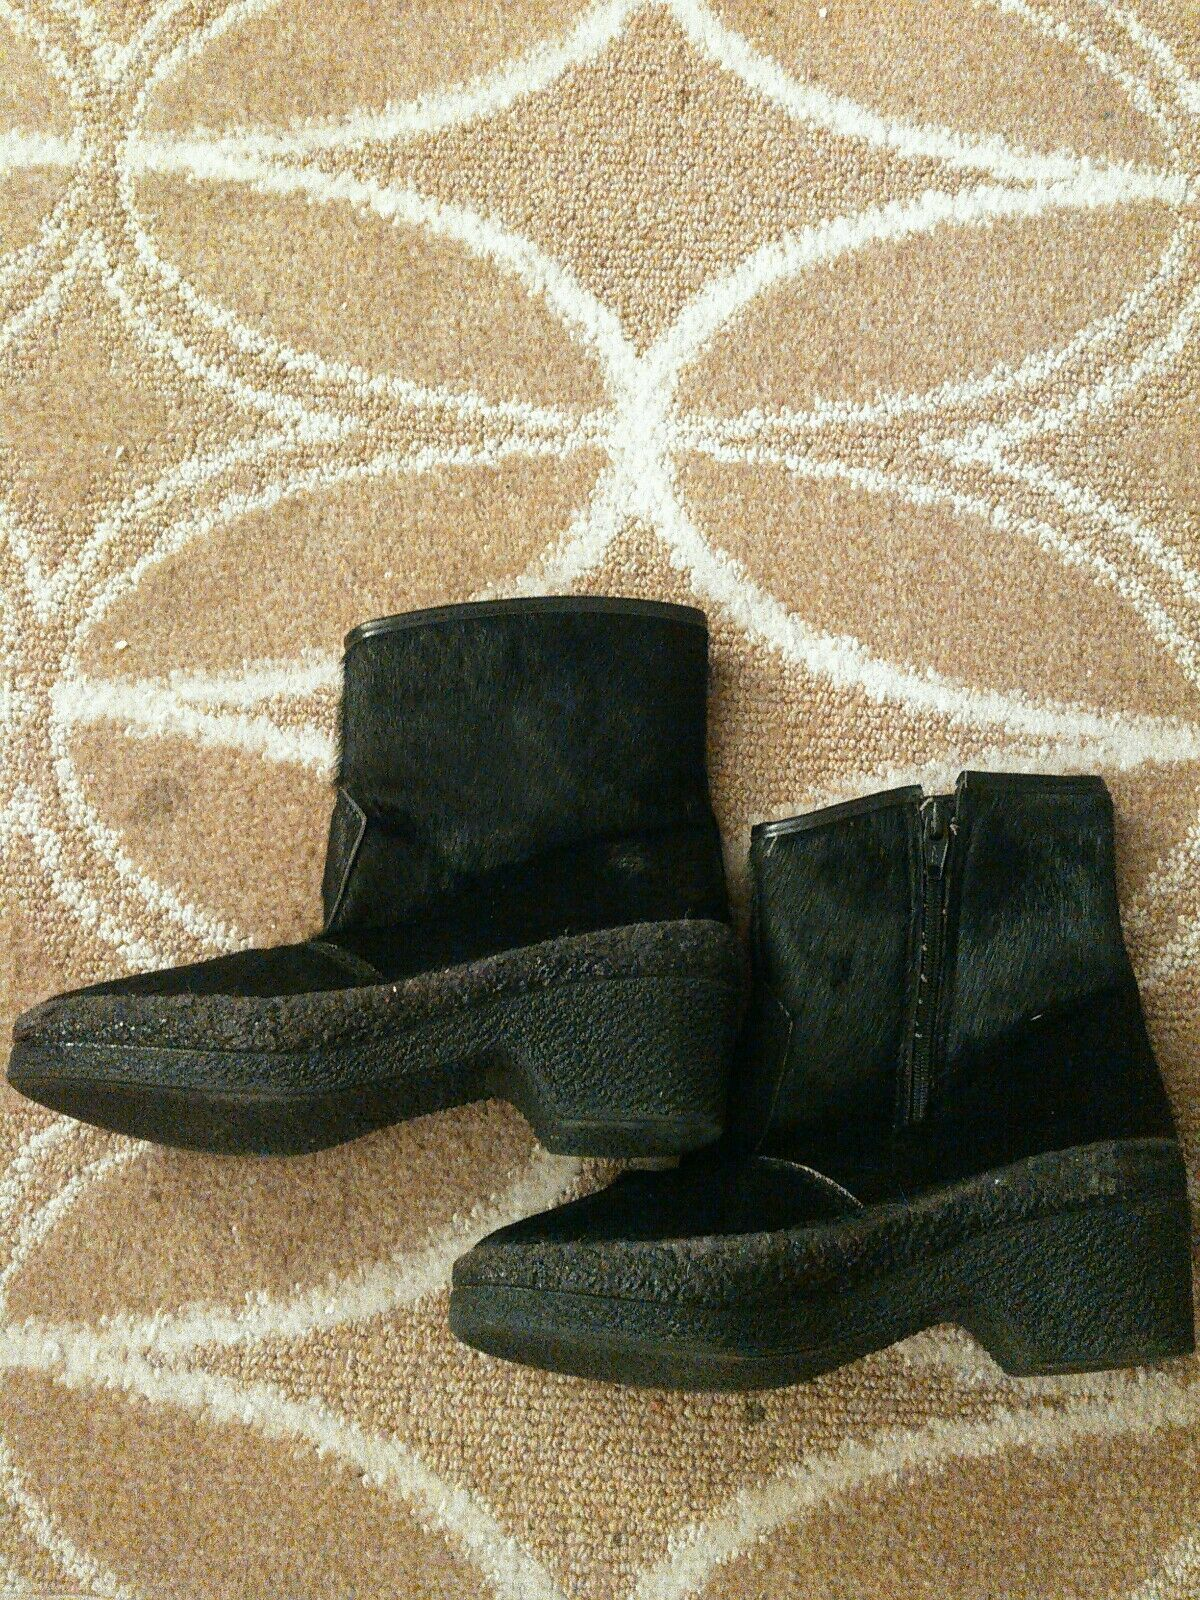 Golf Gomma Boots Size 5.5 Italy